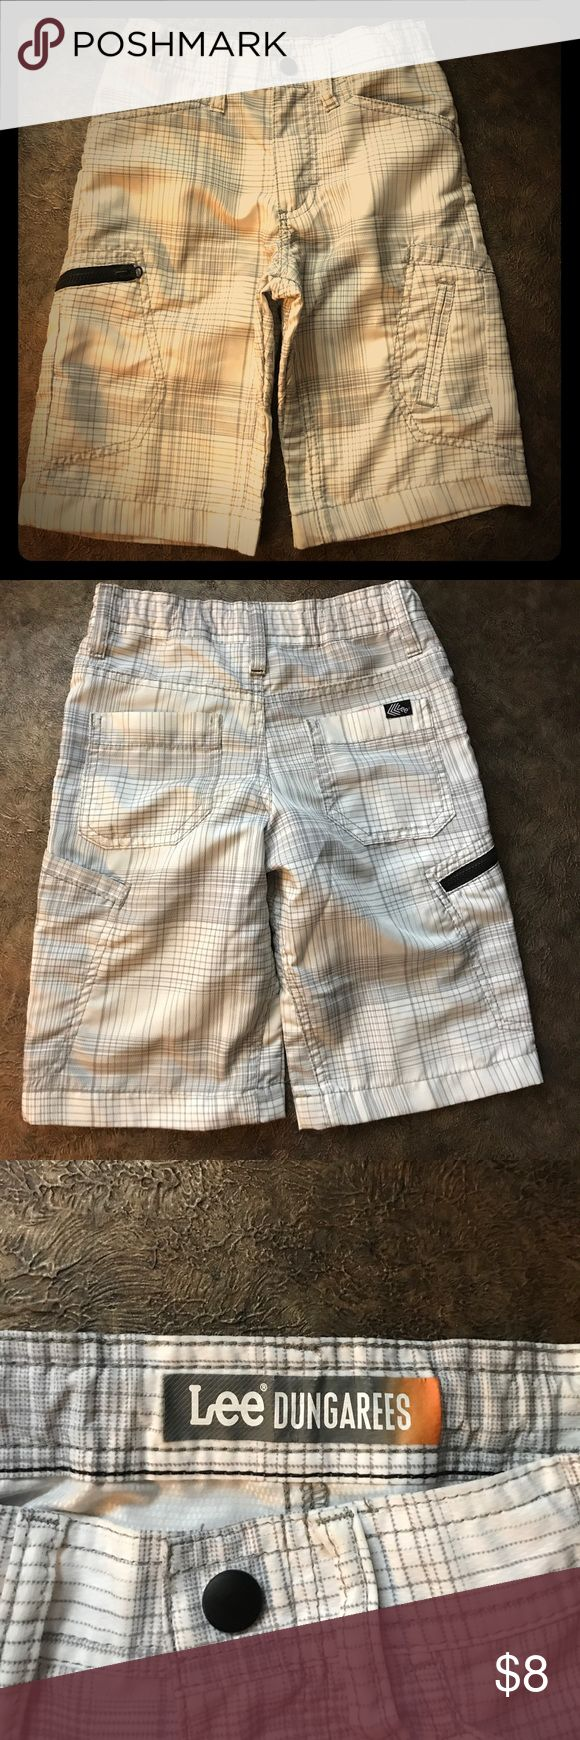 Boy's Gray and White Lee Shorts Size 6 Excellent condition, worn only once! Lee Dungarees with pockets and adjustable waist. Size 6. Bundle and Save! Lee Bottoms Shorts